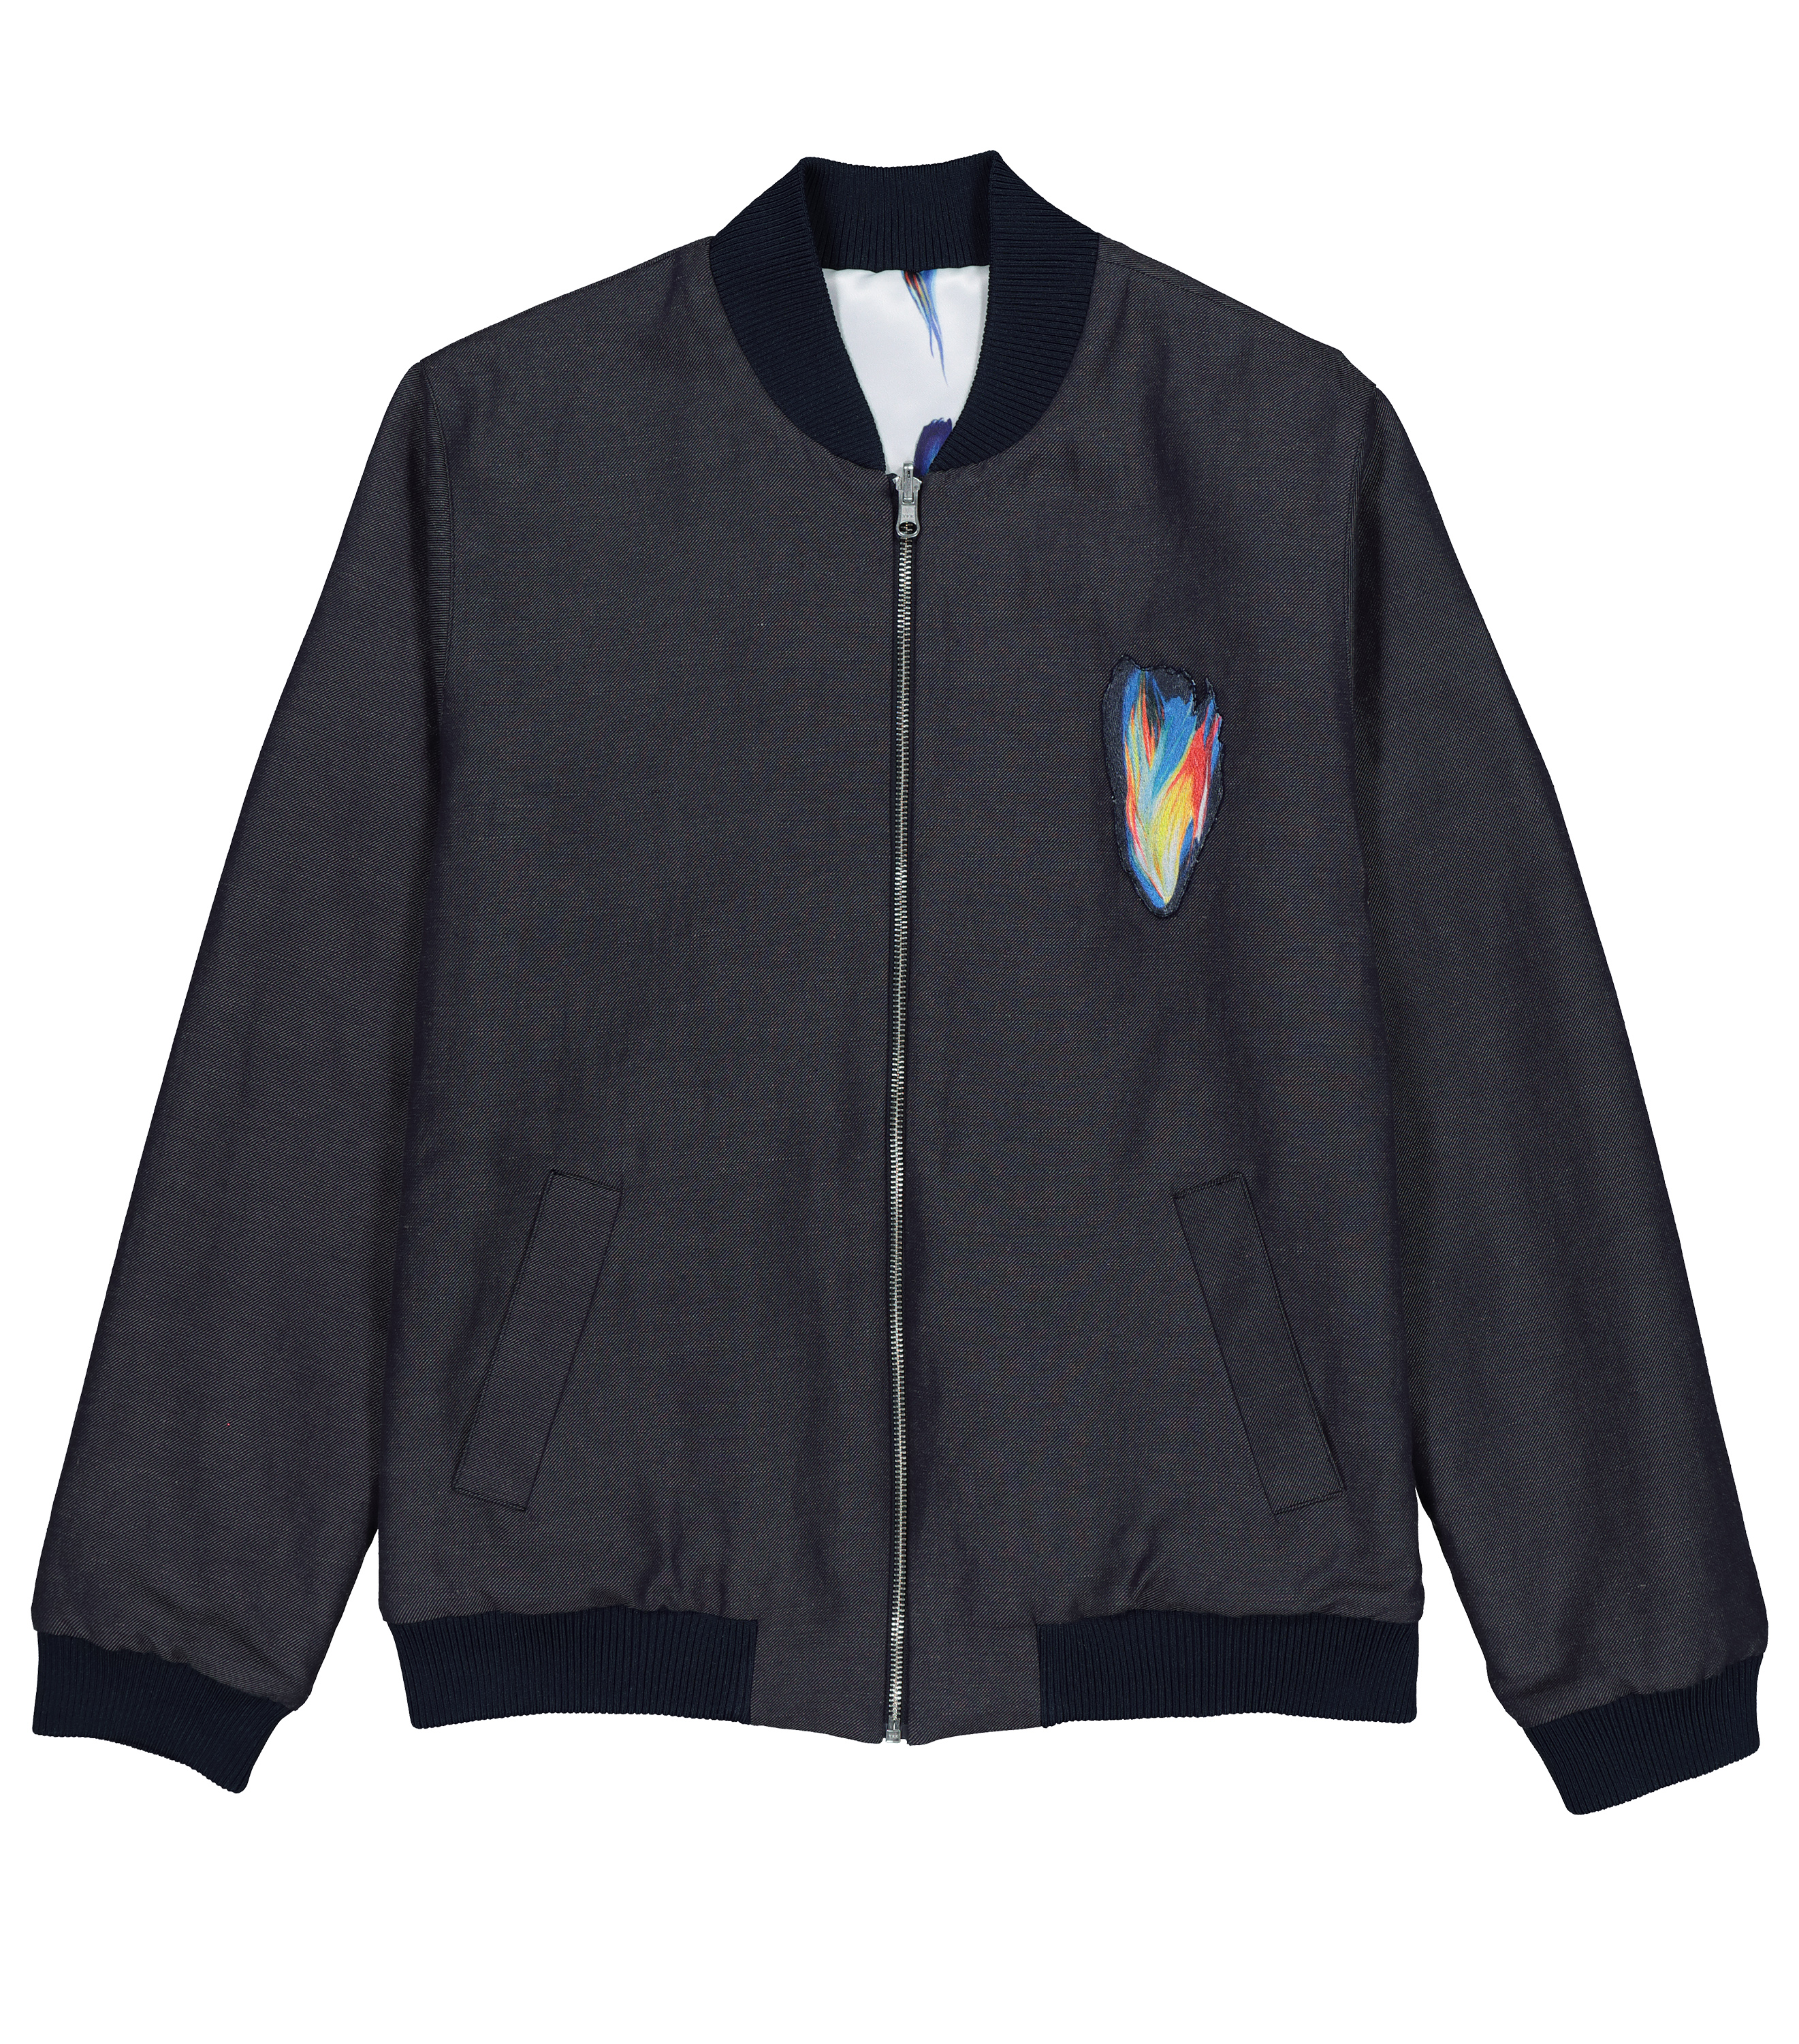 BOMBER JACKET ZALKO  - Marine/allover